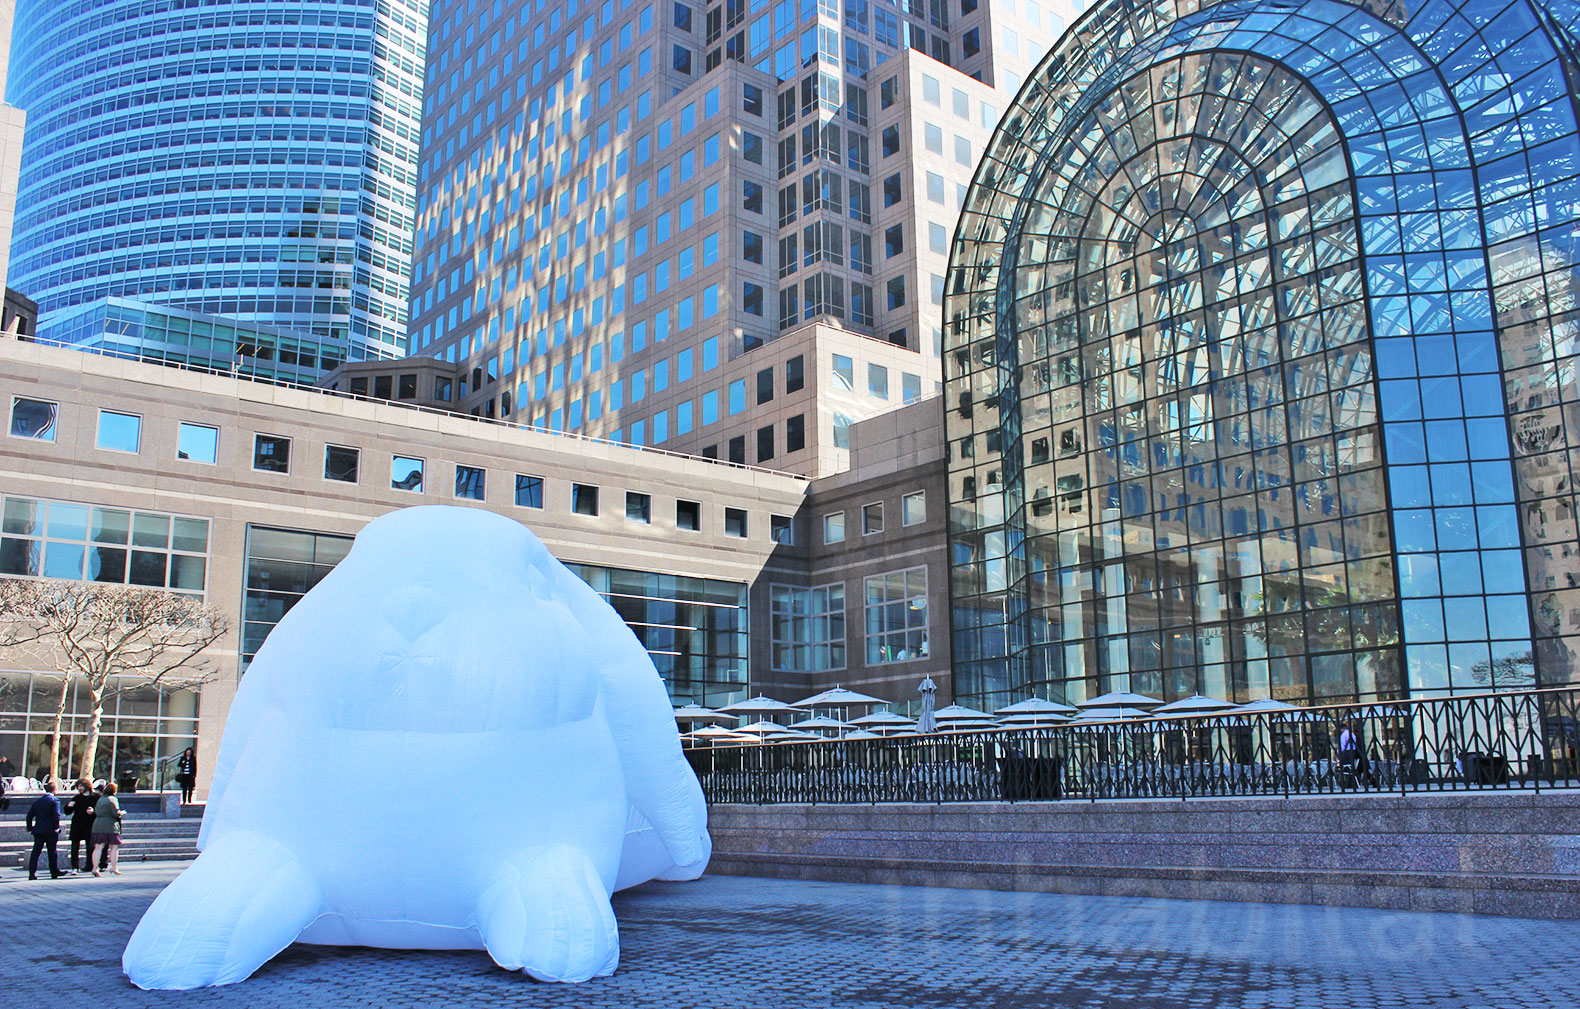 these 5 story tall glowing bunnies will be invading downtown new